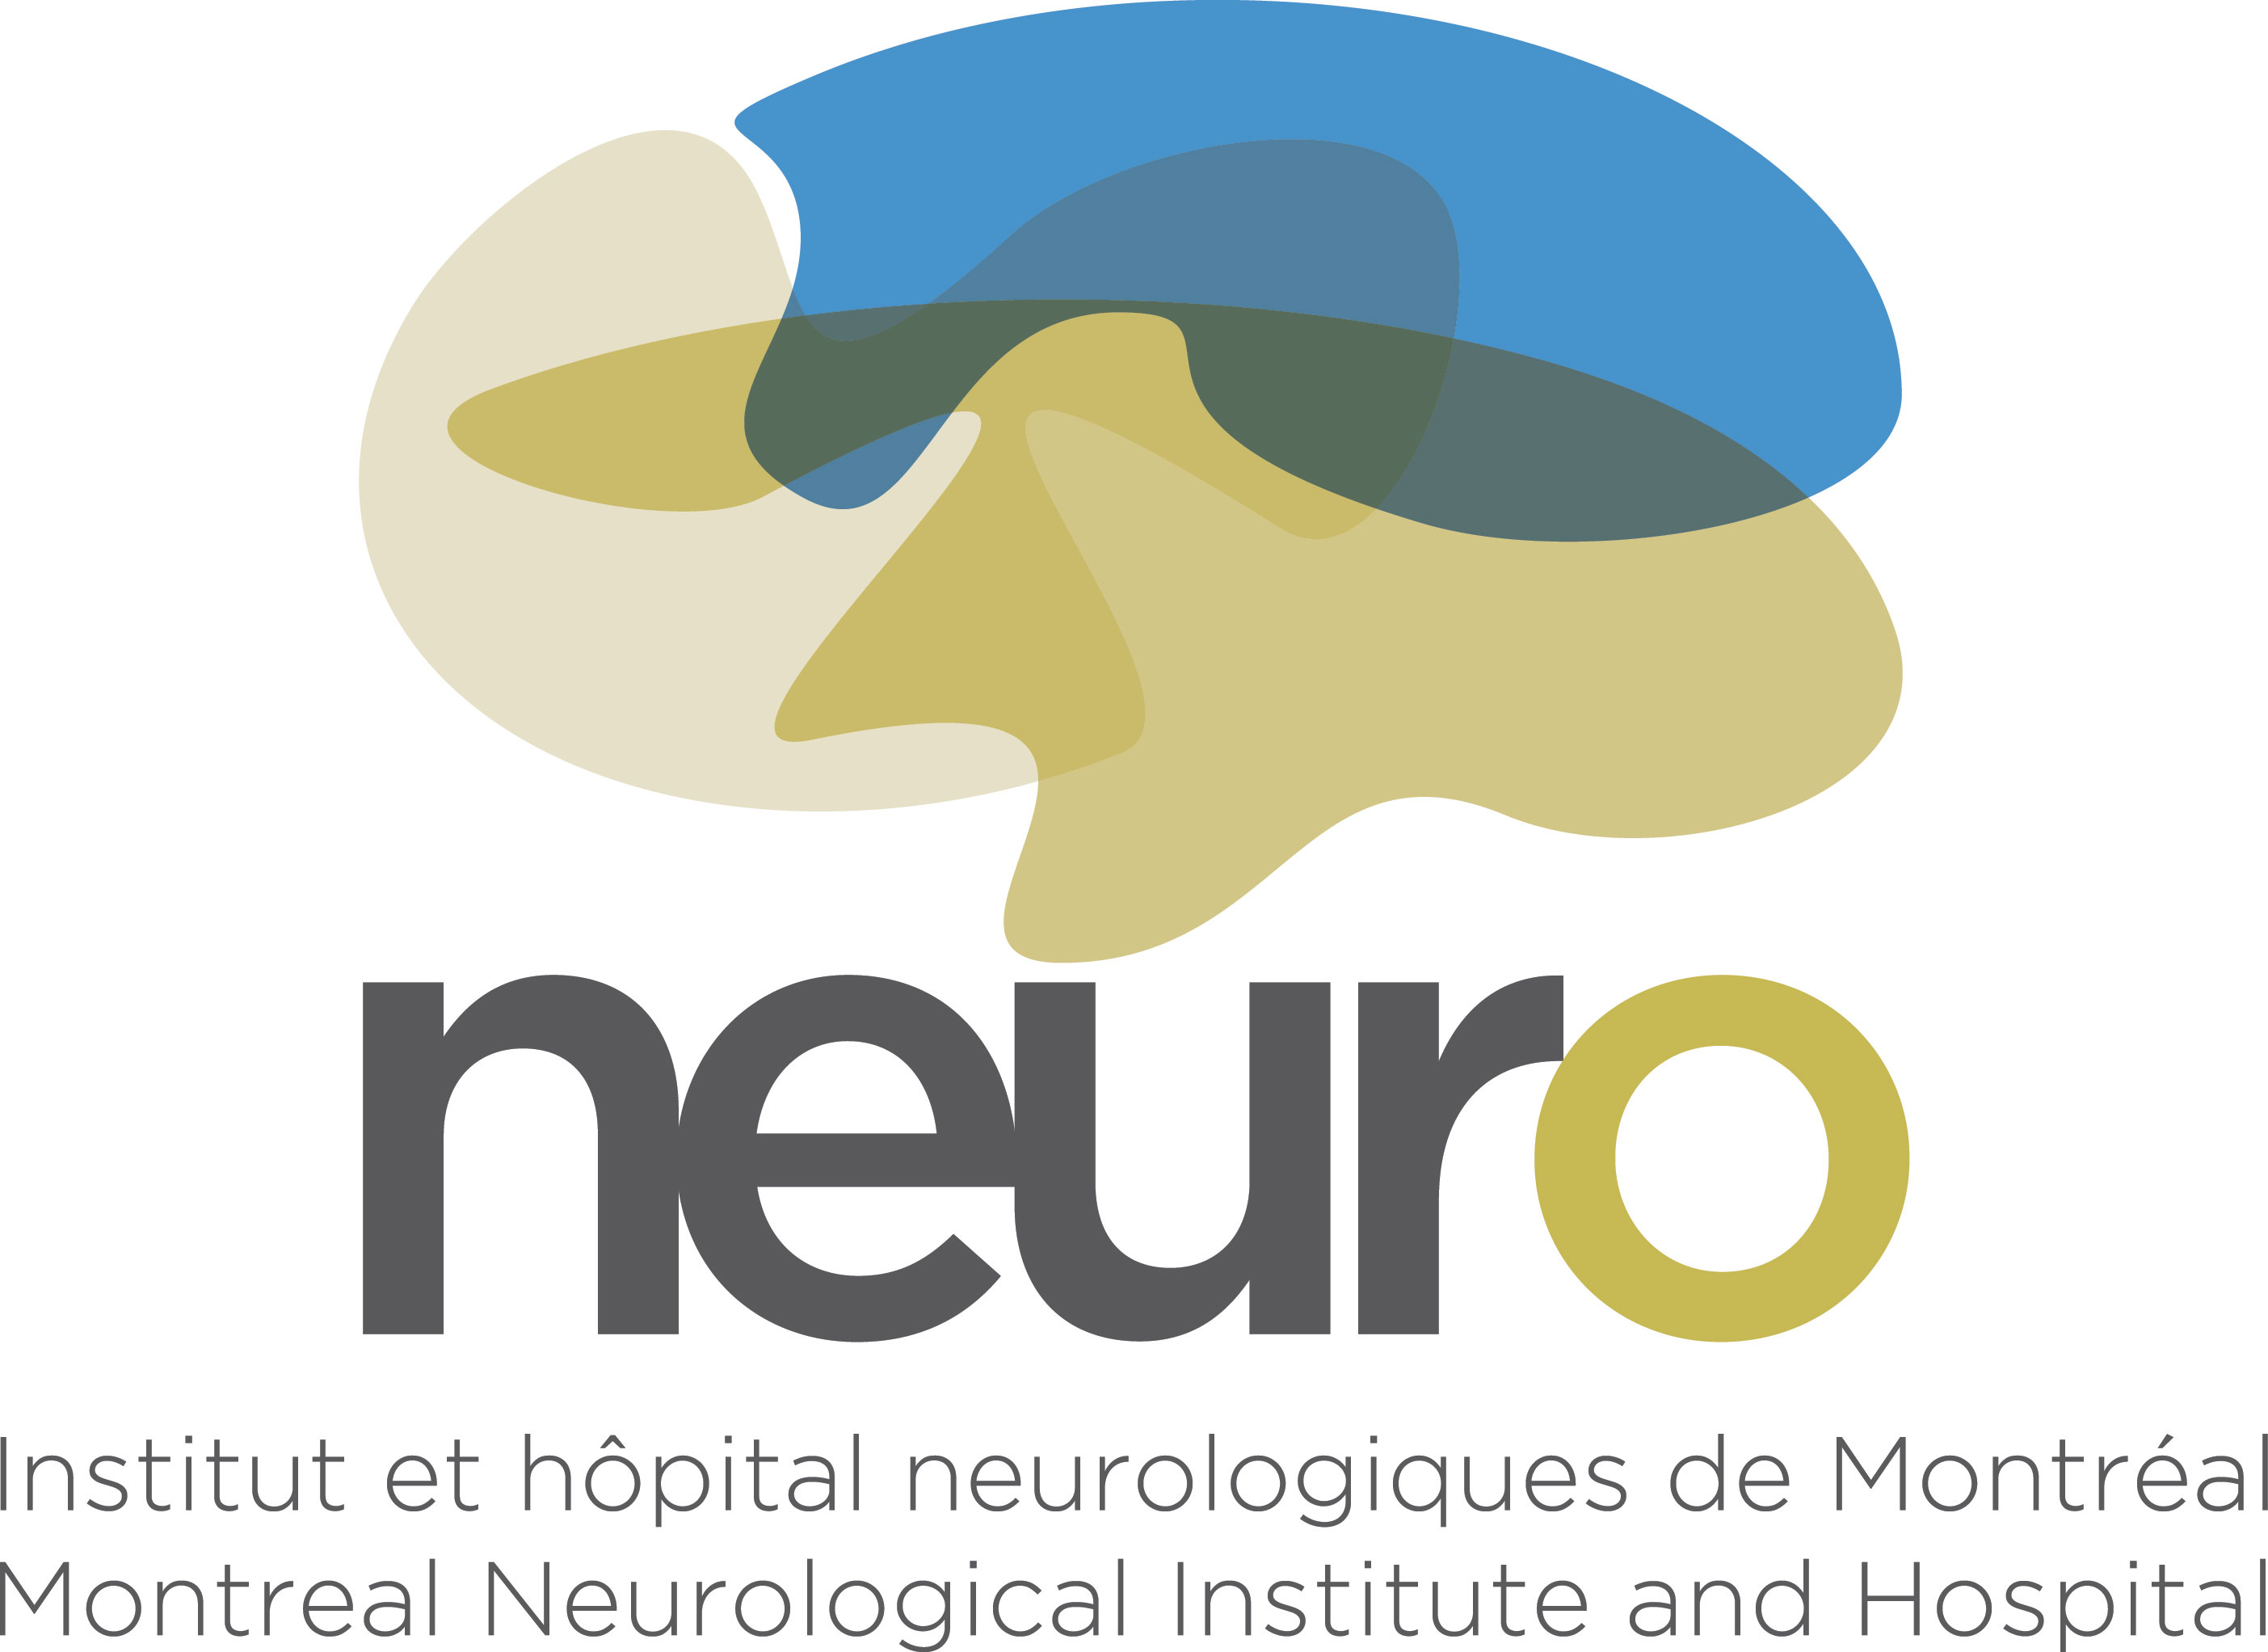 visual identity montreal neurological institute and